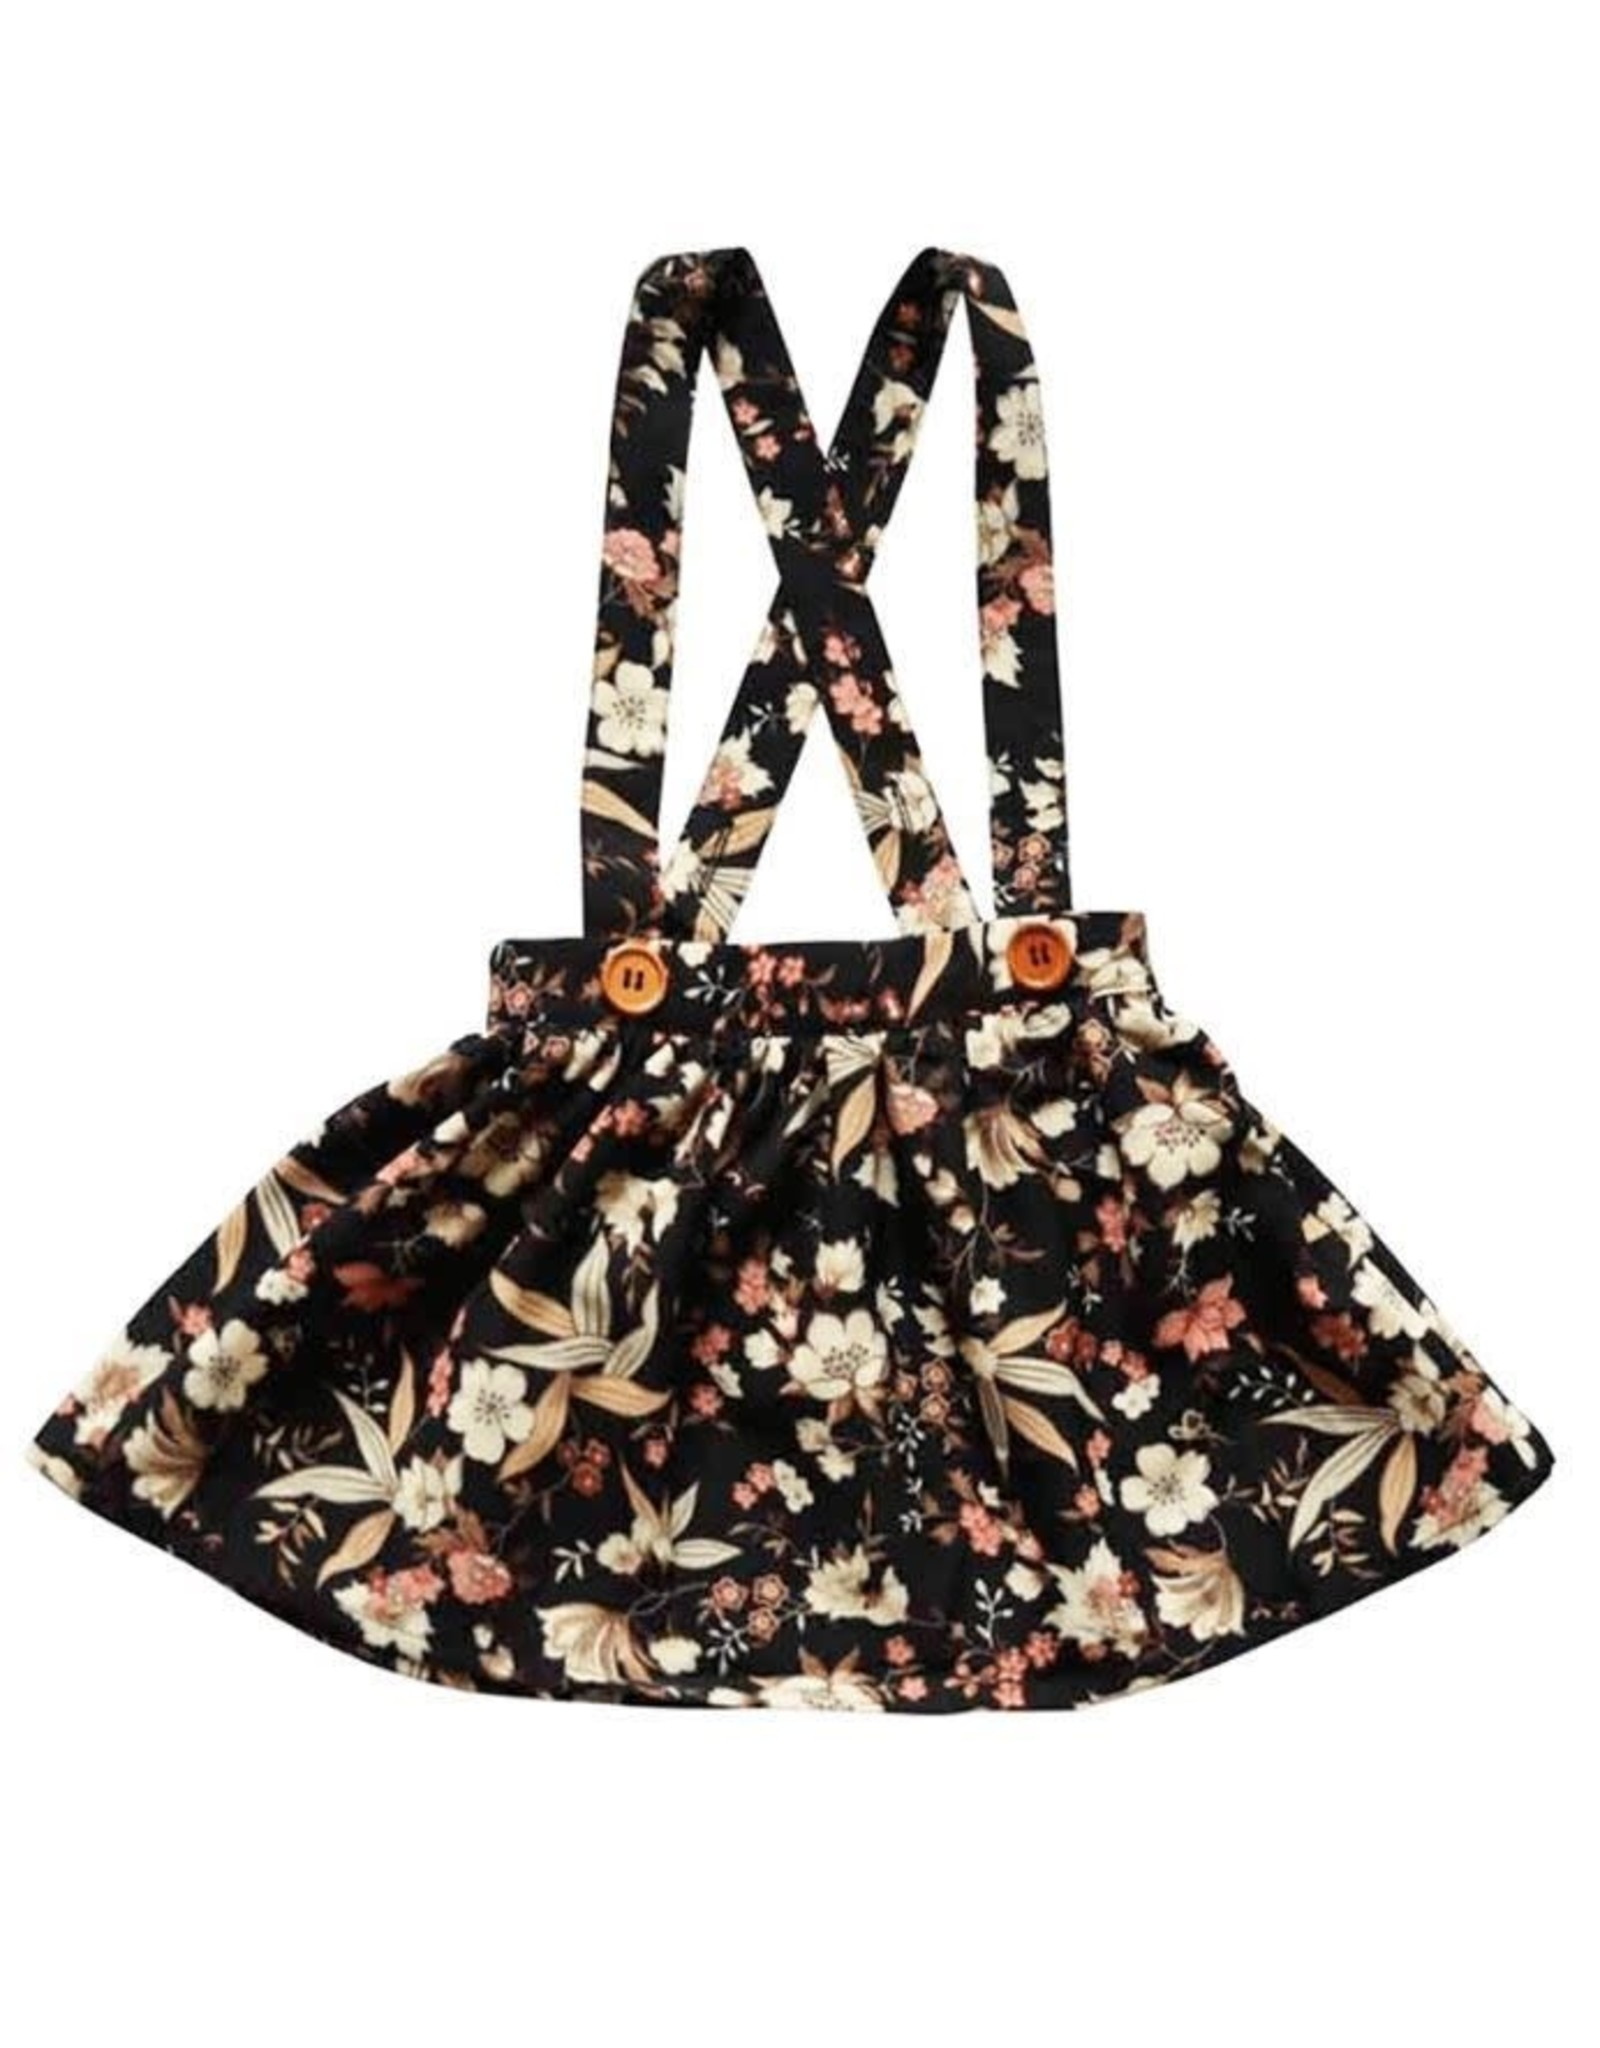 Bailey's Blossoms Daphne Suspender Skirt-Floral